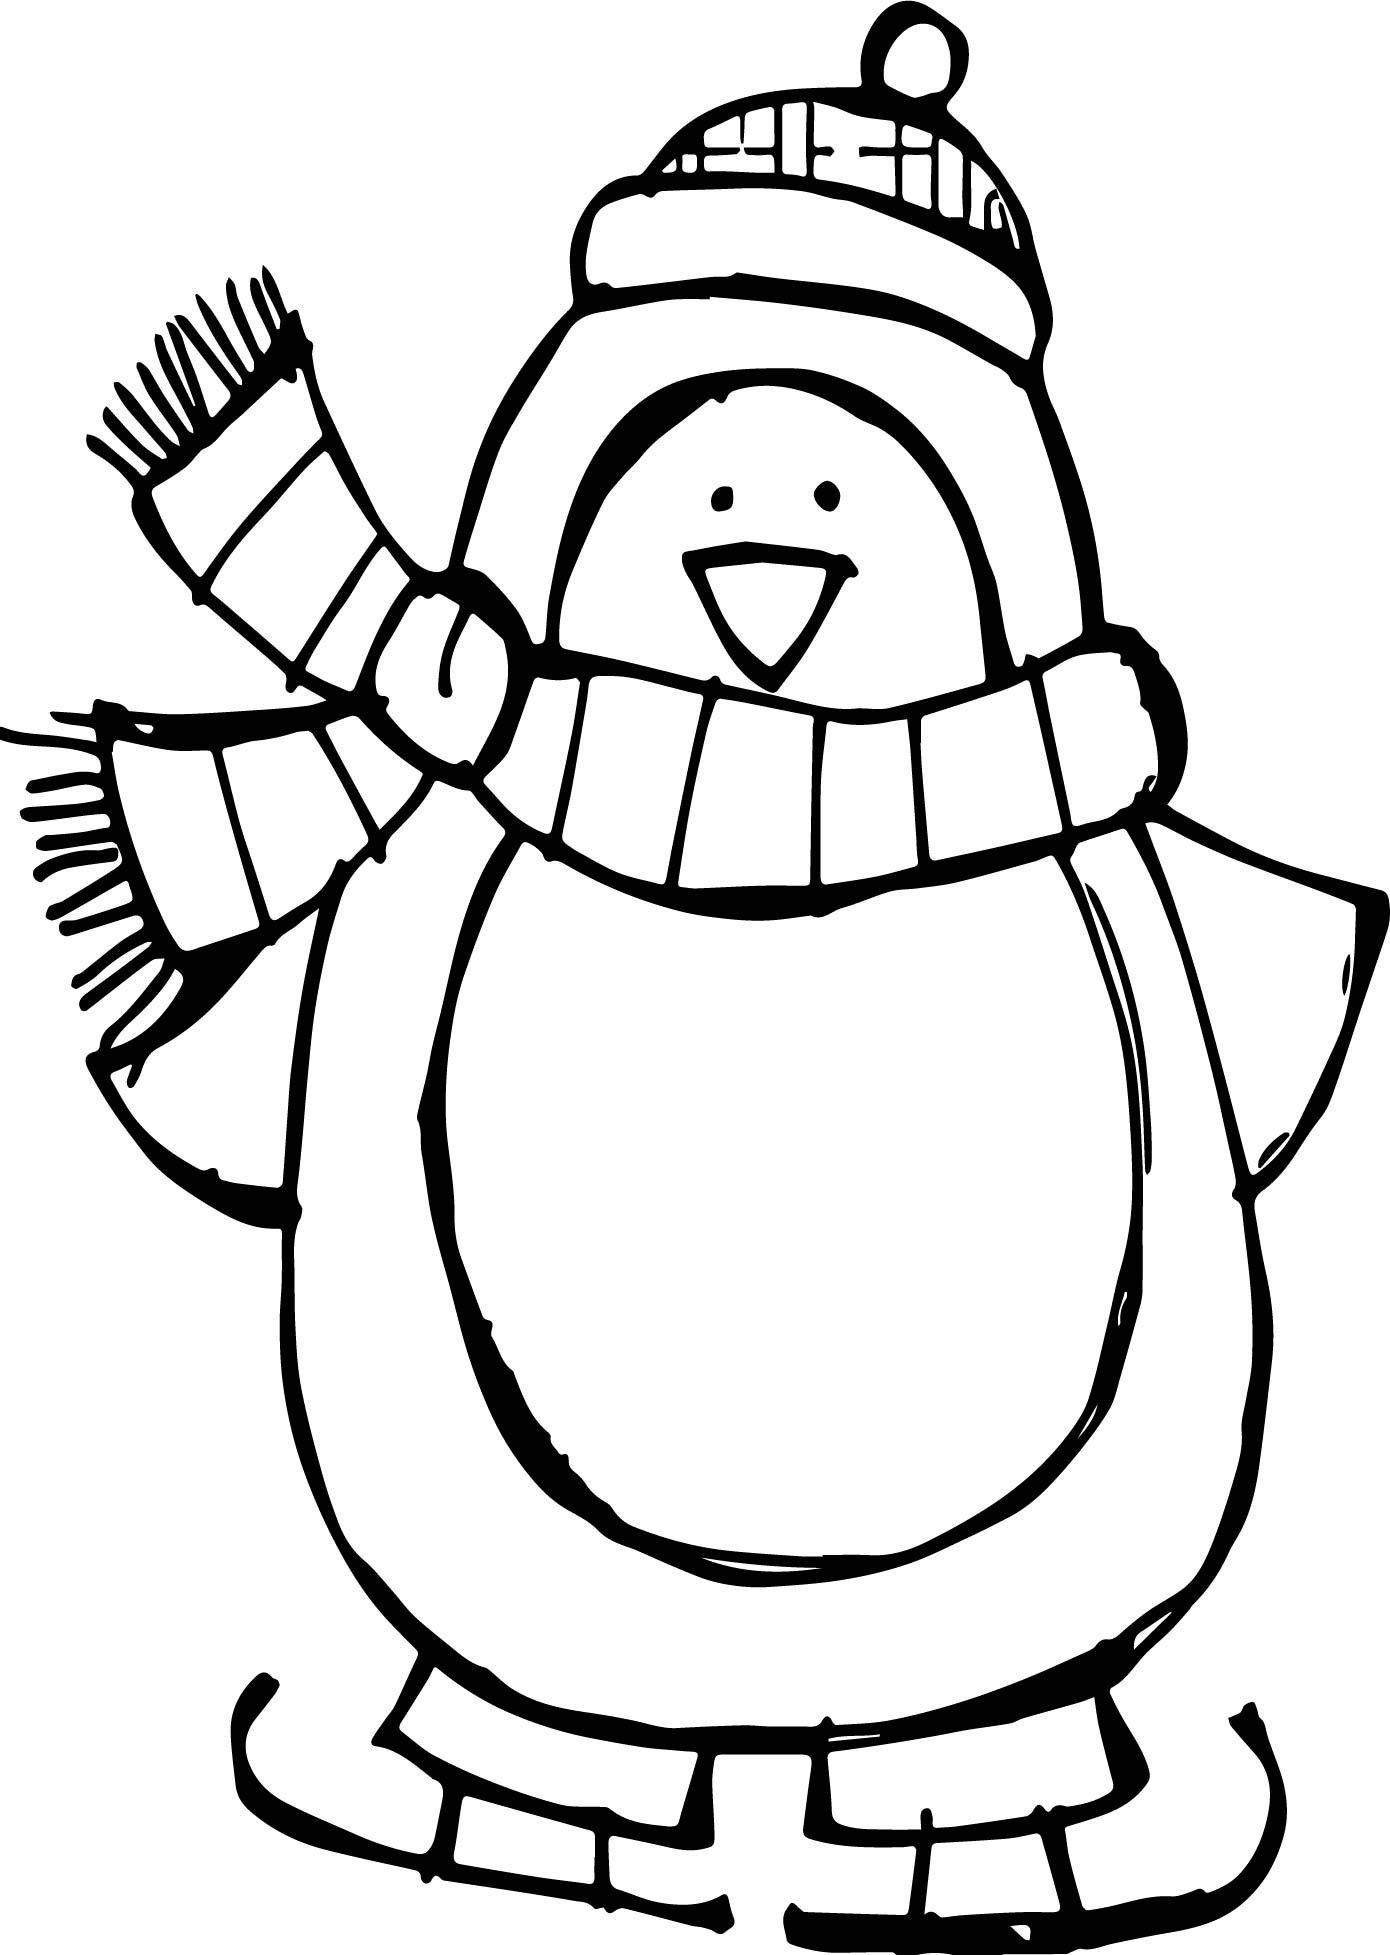 coloring page of penguin baby penguin coloring pages at getcoloringscom free coloring of page penguin